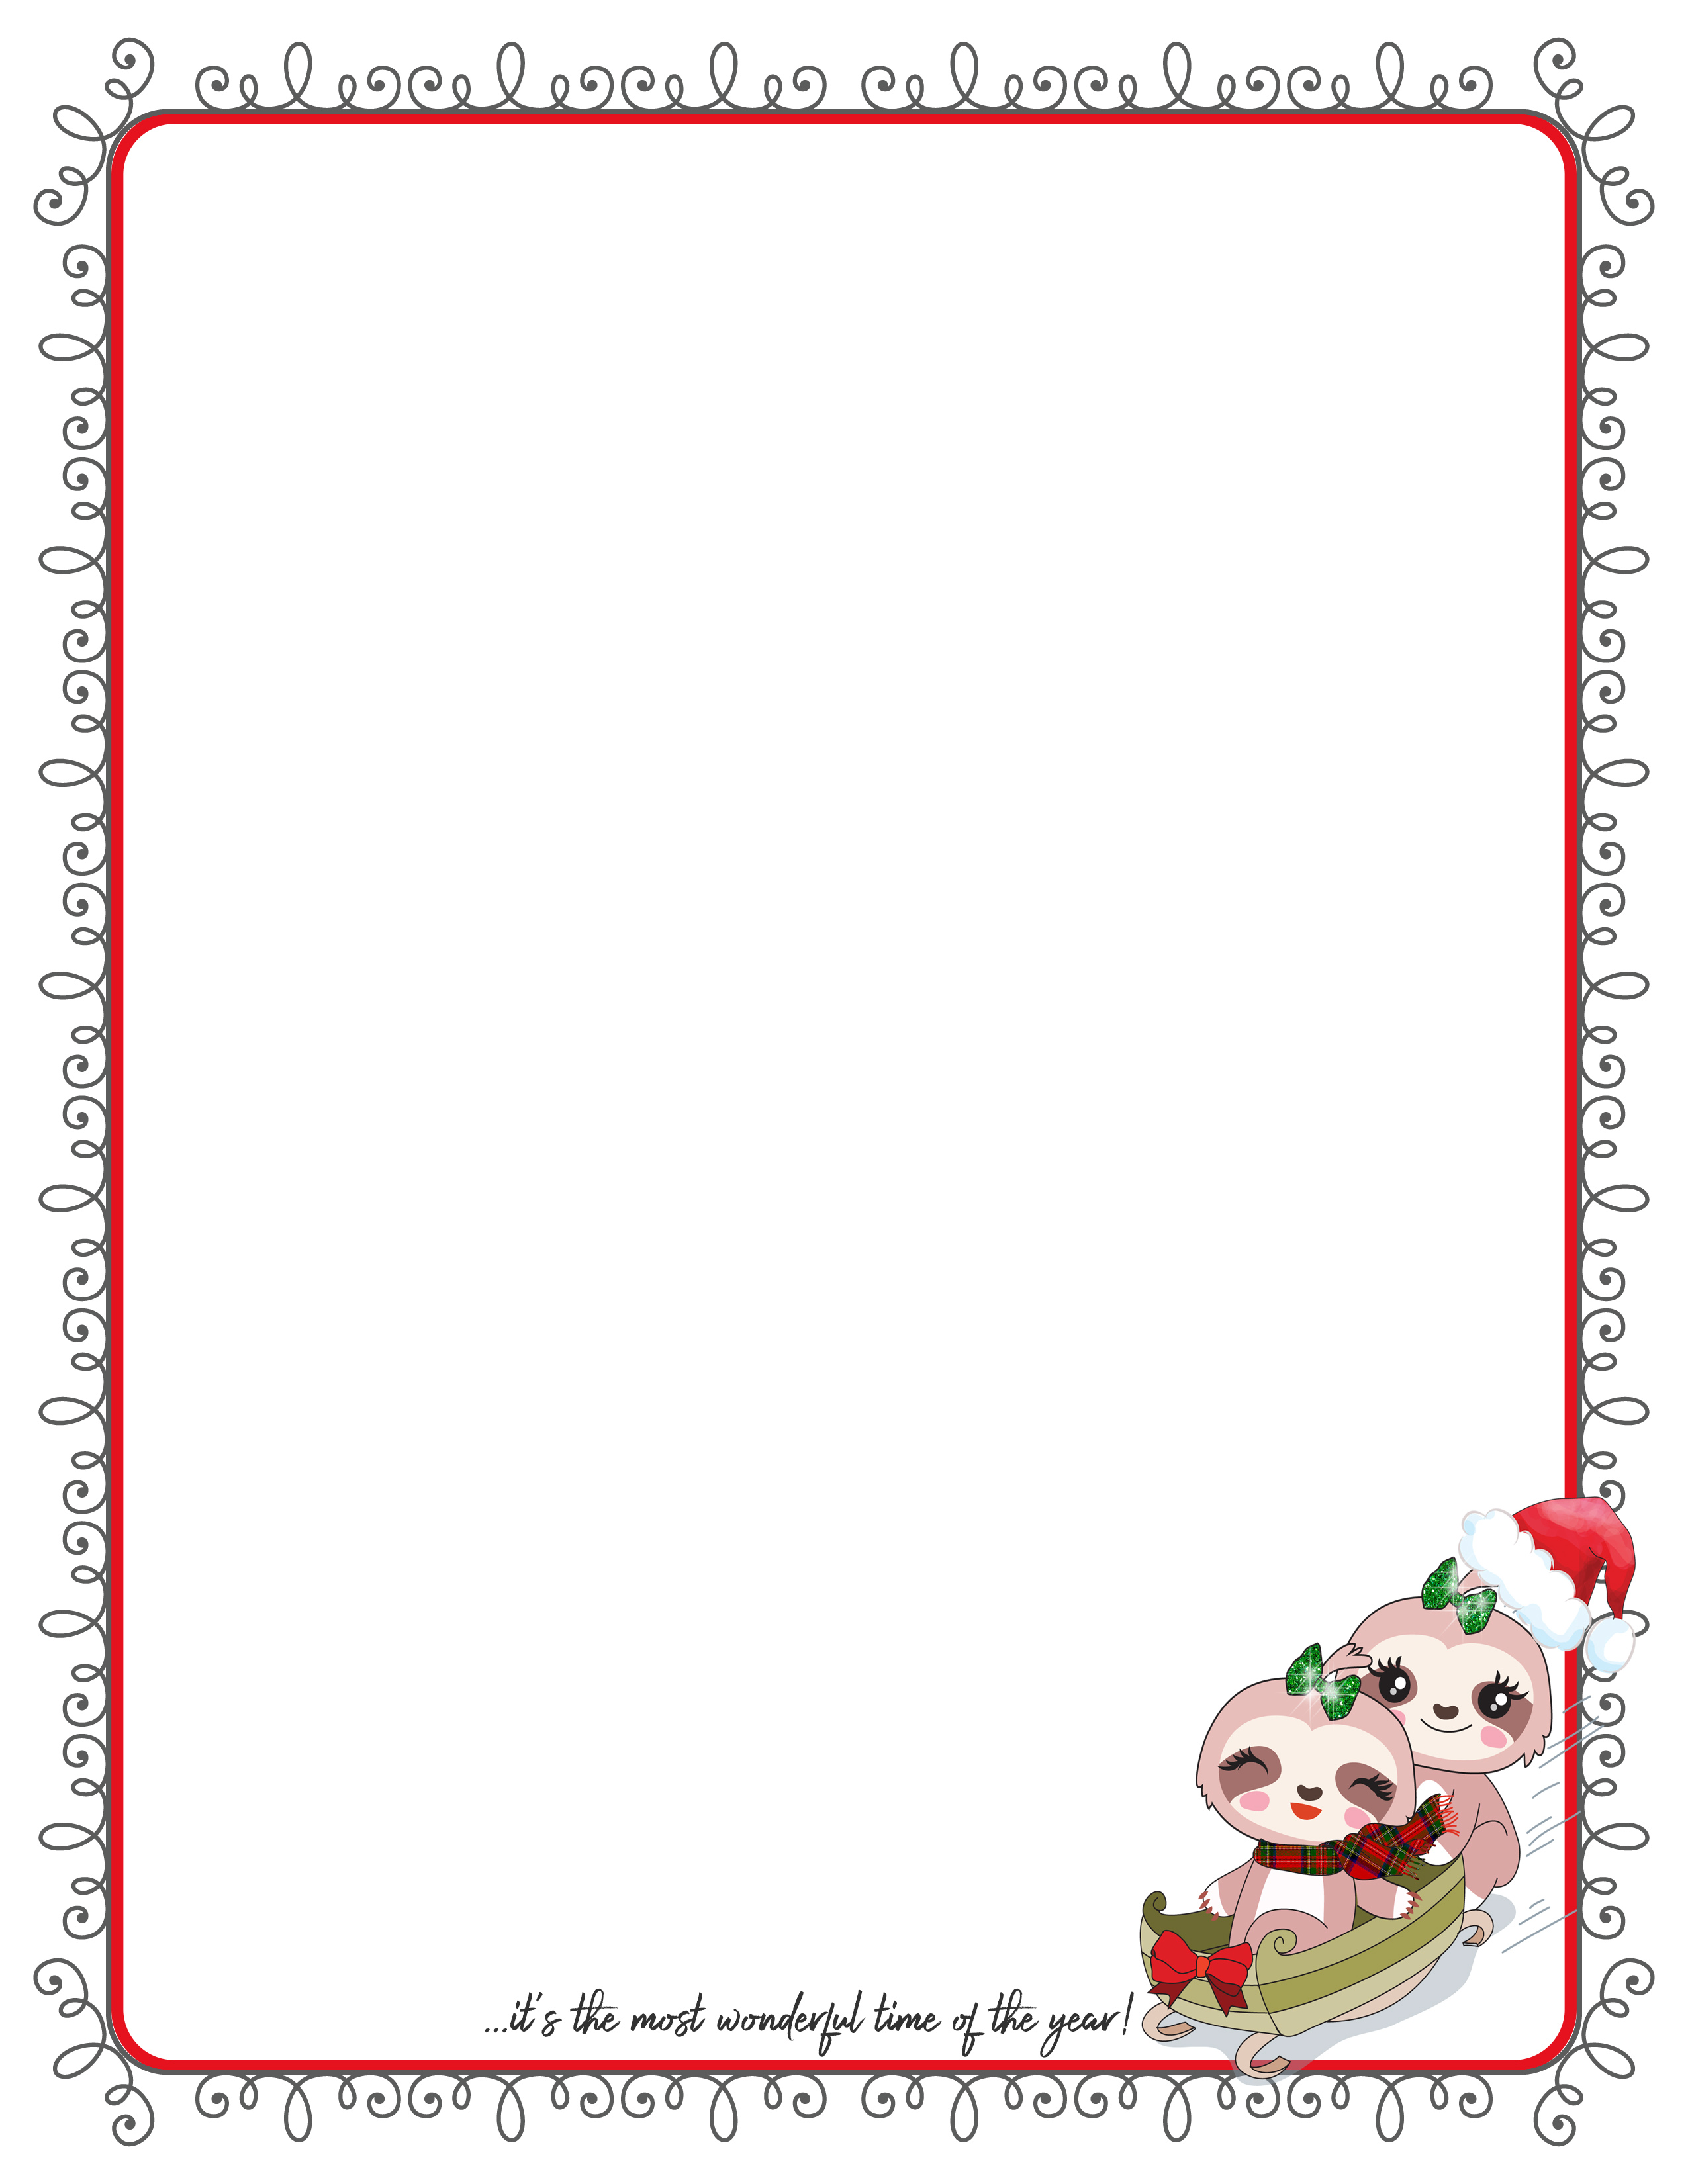 photo regarding Printable Christmas Letter Paper known as Printable Extremely Stationery For Letter Creating Working with Small Ink